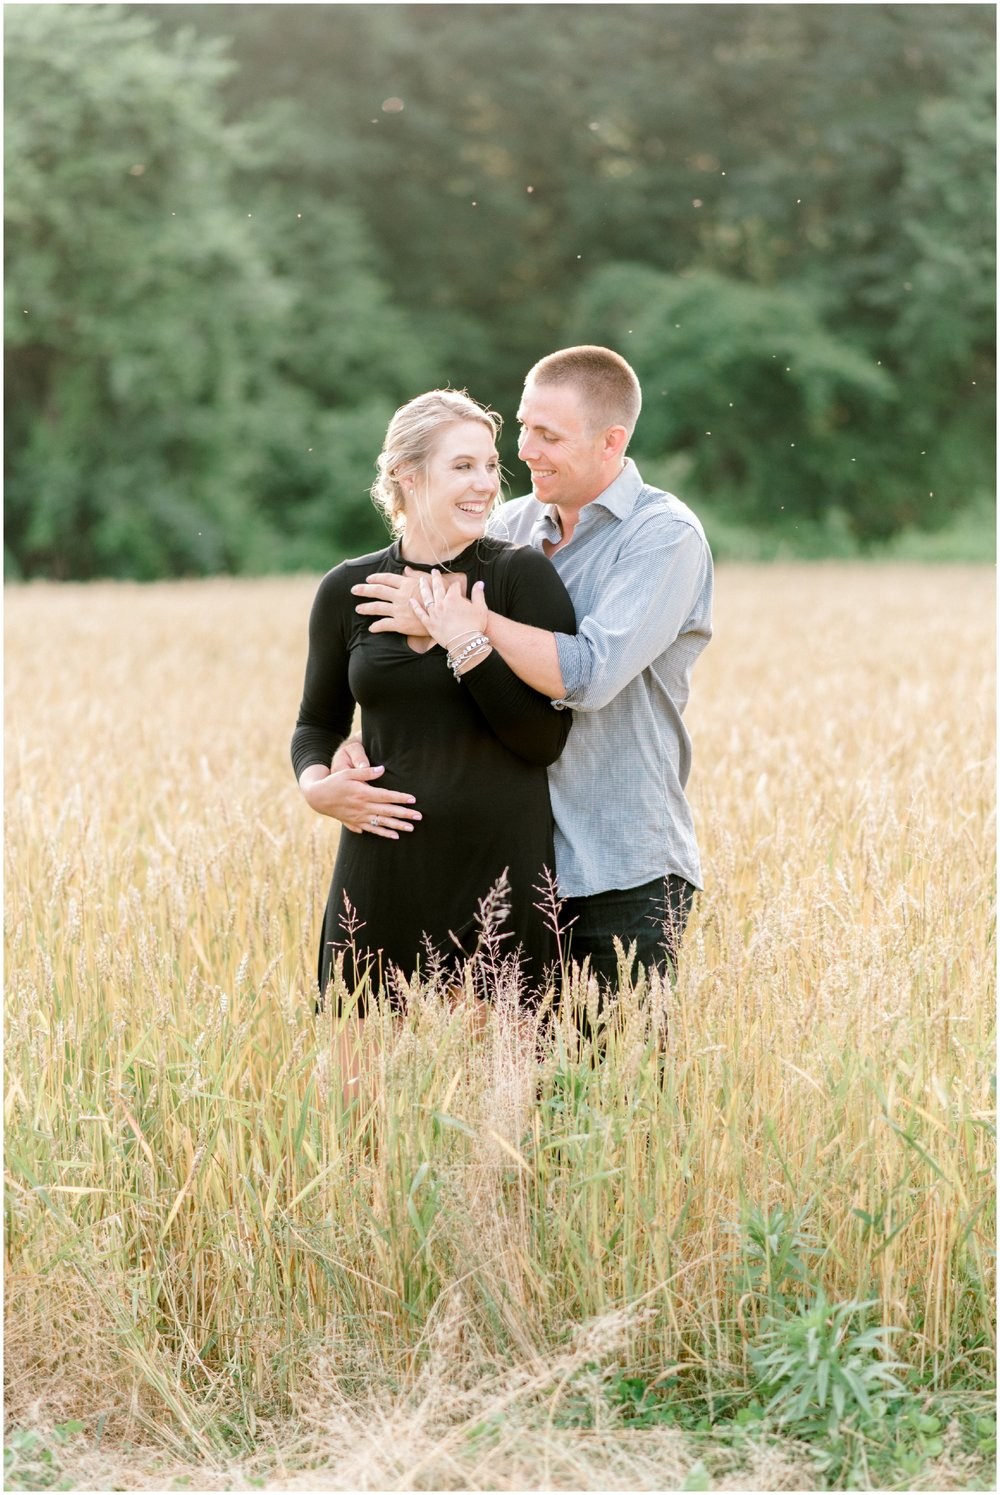 Summer Private Farm Engagement Session - Krista Brackin Photography_0018.jpg